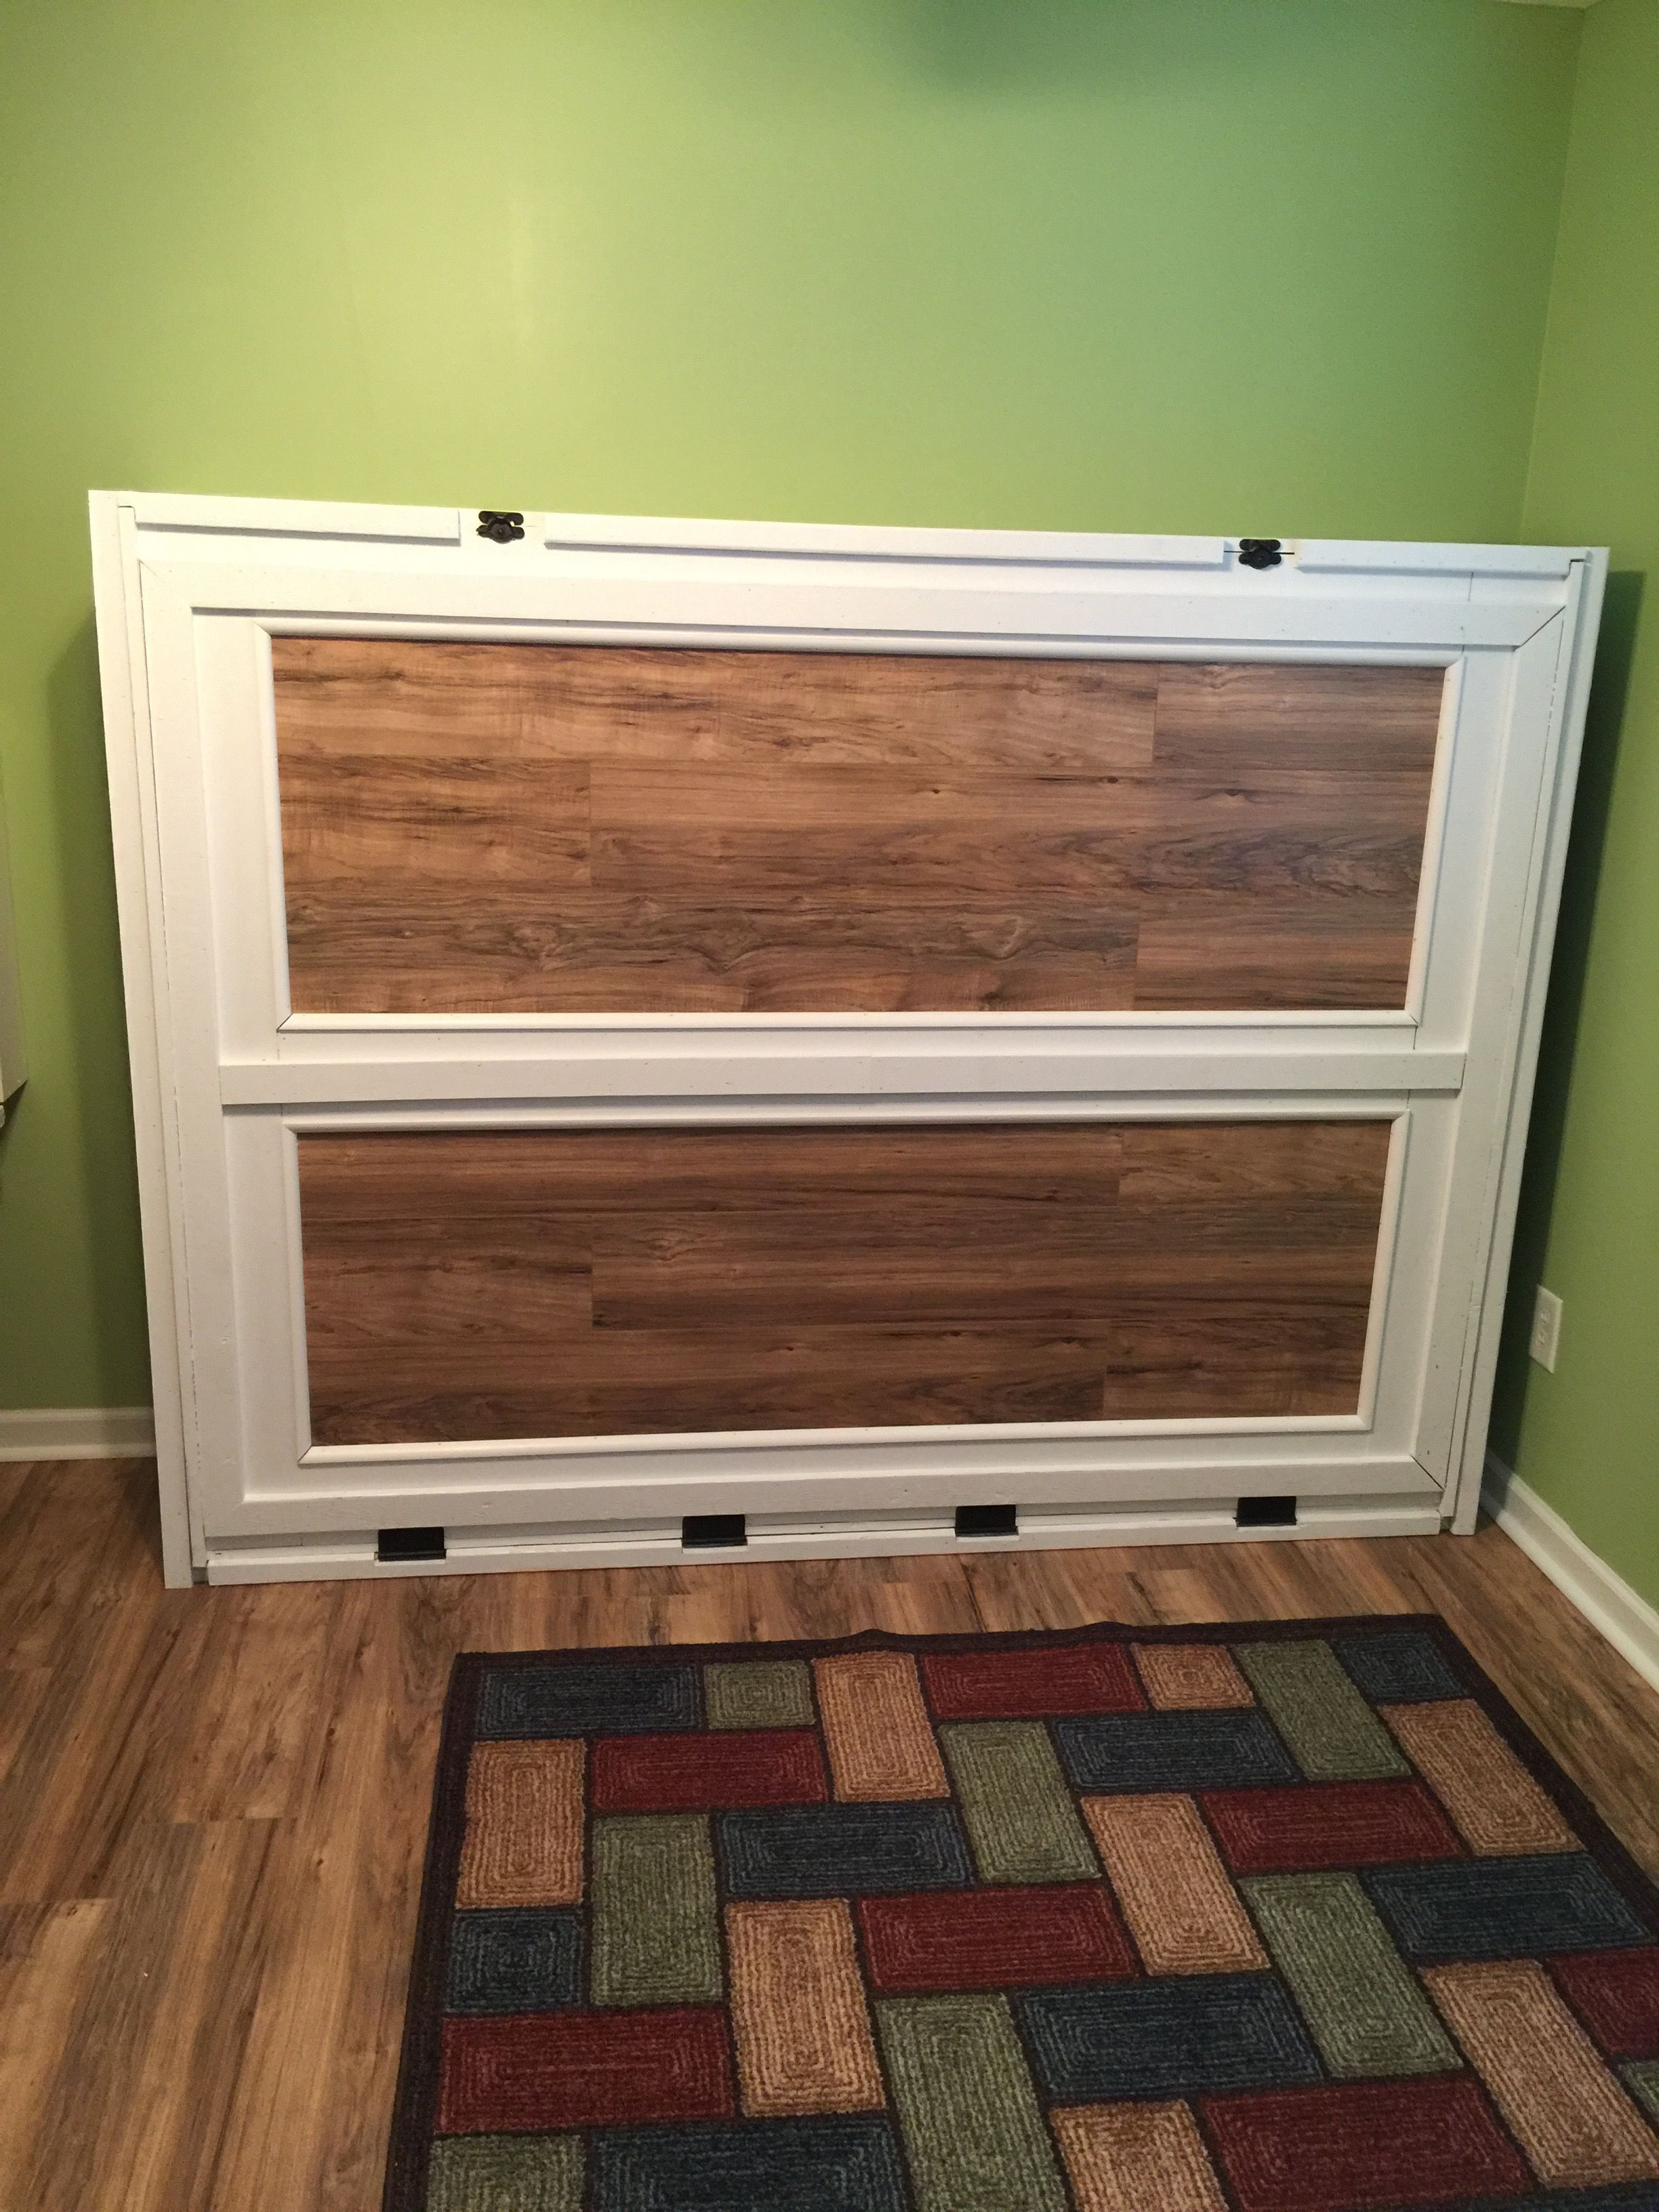 Queen murphy bed do it yourself home projects from ana white the queen murphy bed do it yourself home projects from ana white solutioingenieria Image collections